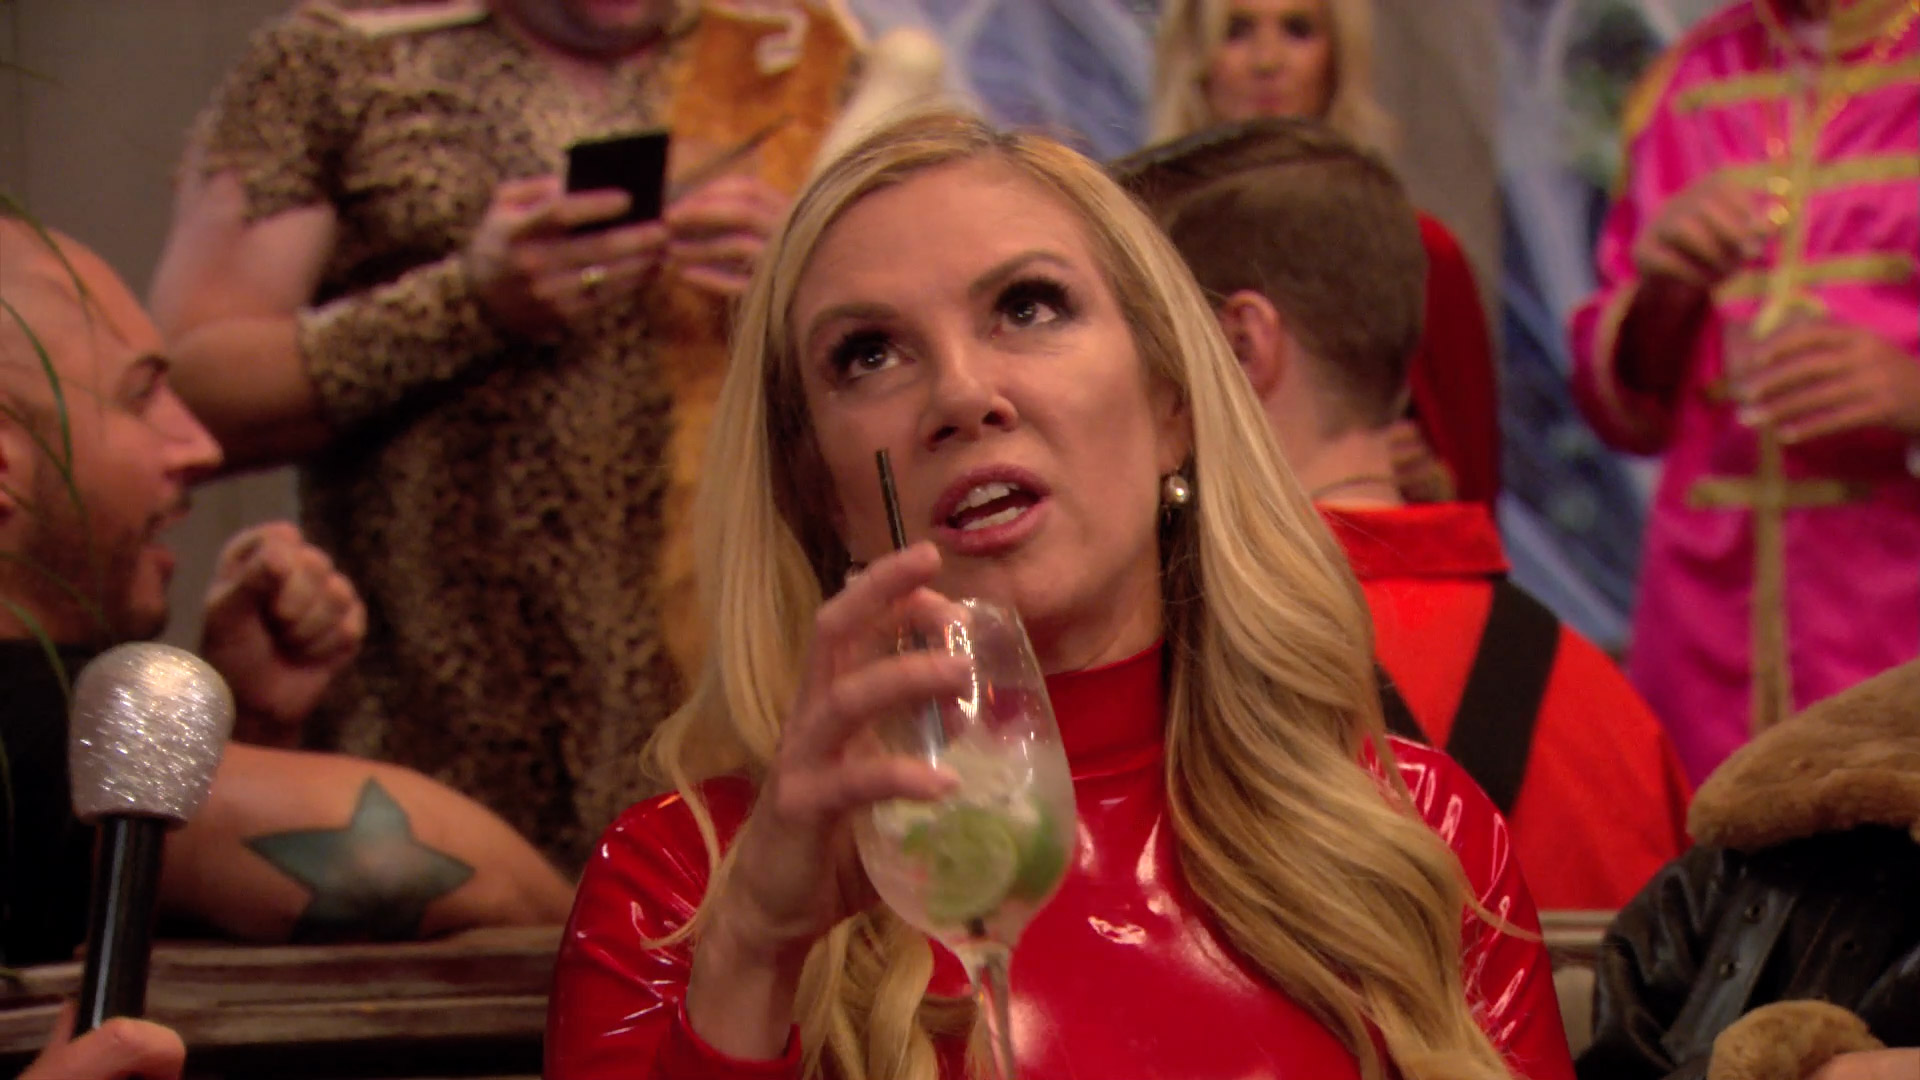 Watch See Even More From Bethenny and Ramona's Halloween Argument | The  Real Housewives of New York City Season 10 - Episode 1 Video